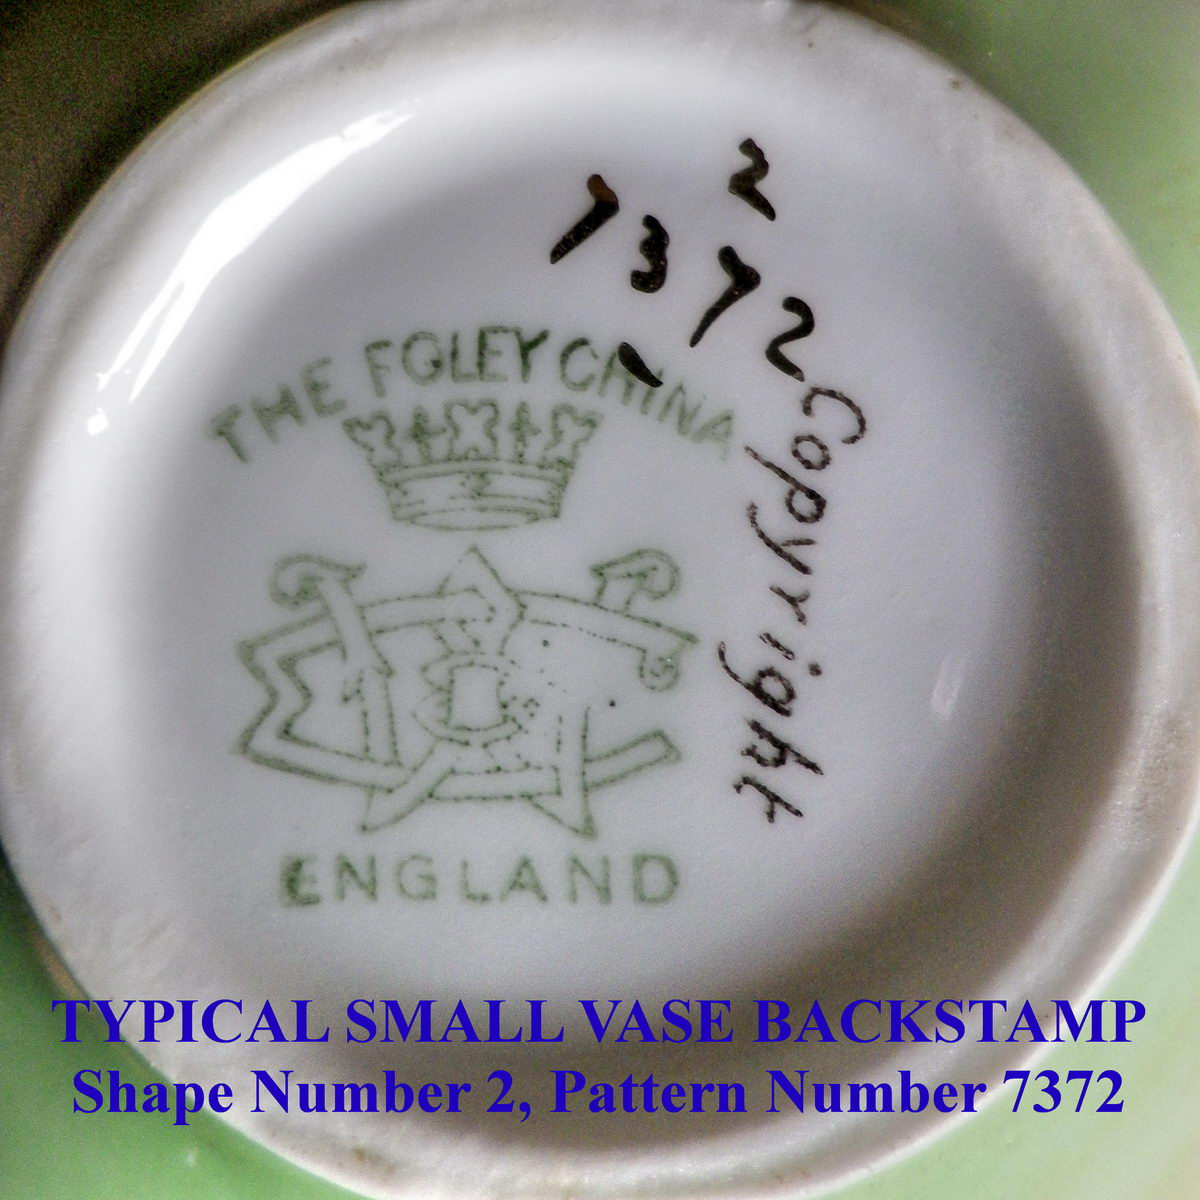 Typical Small Vase Backstamp